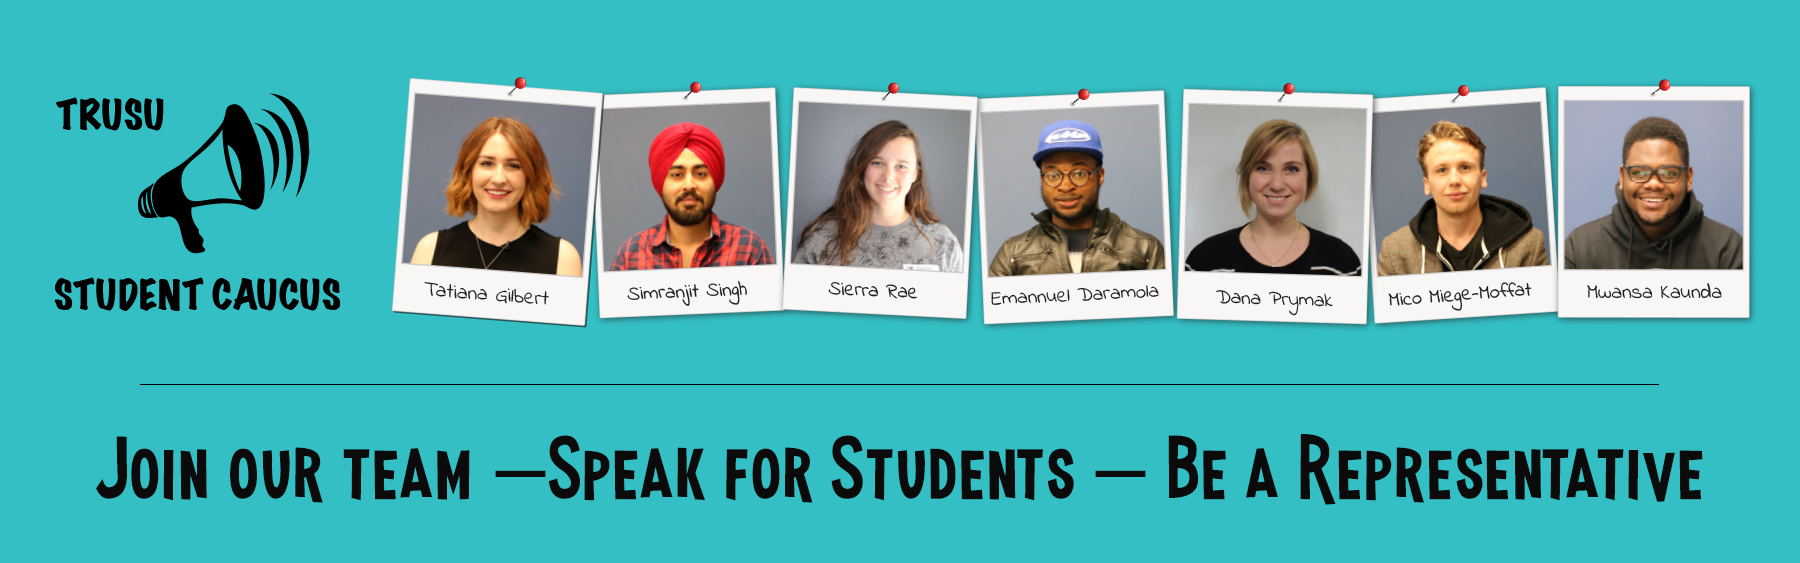 Join the Student Caucus